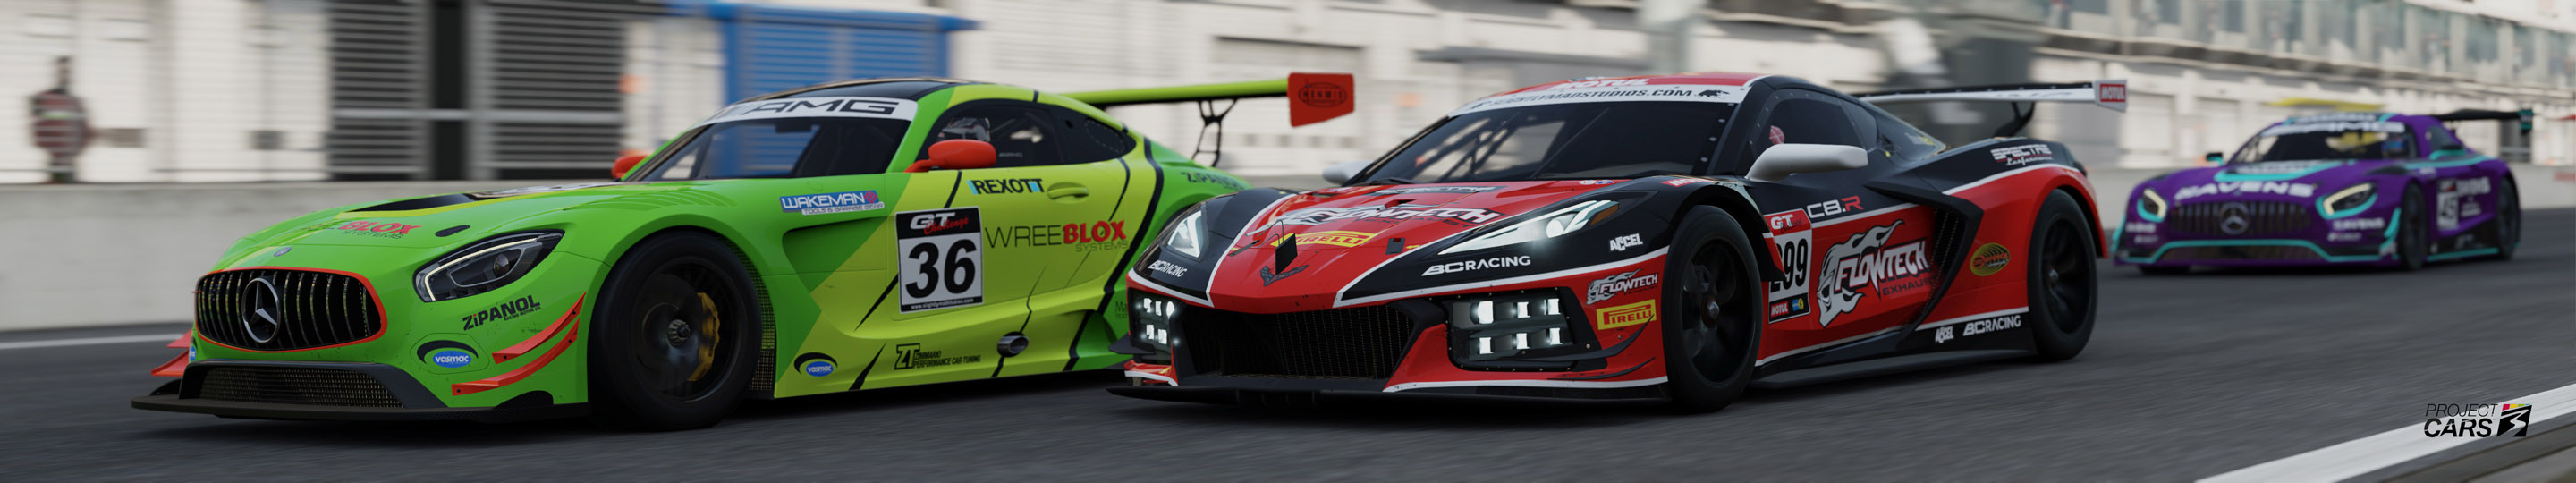 2 PROJECT CARS 3 GT3 at NORDSCHLEIFE copy.jpg